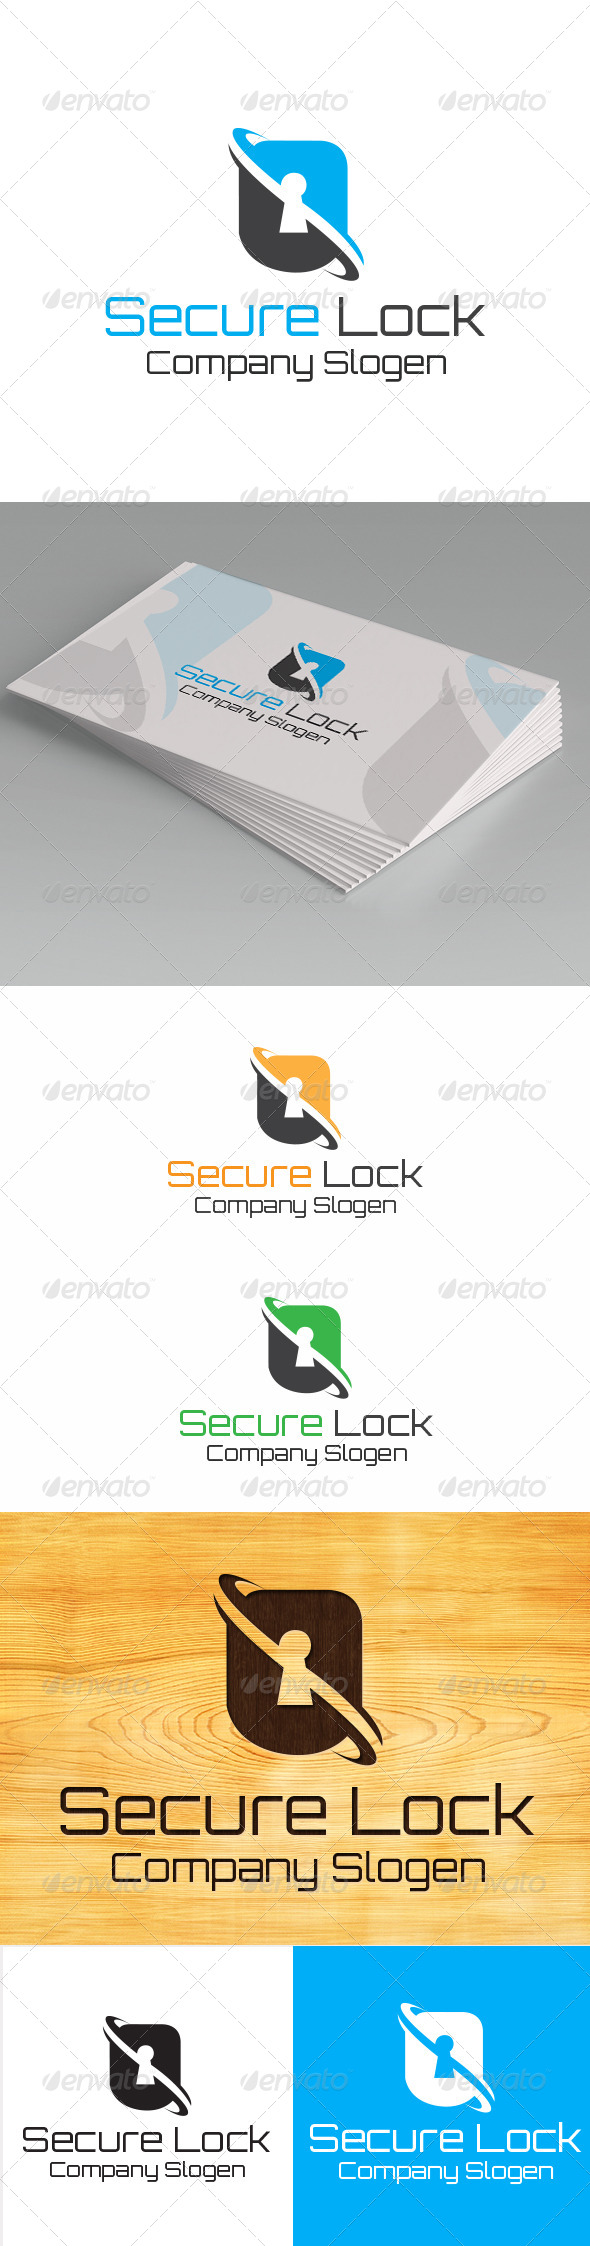 GraphicRiver Secure Lock Logo Template 5697305